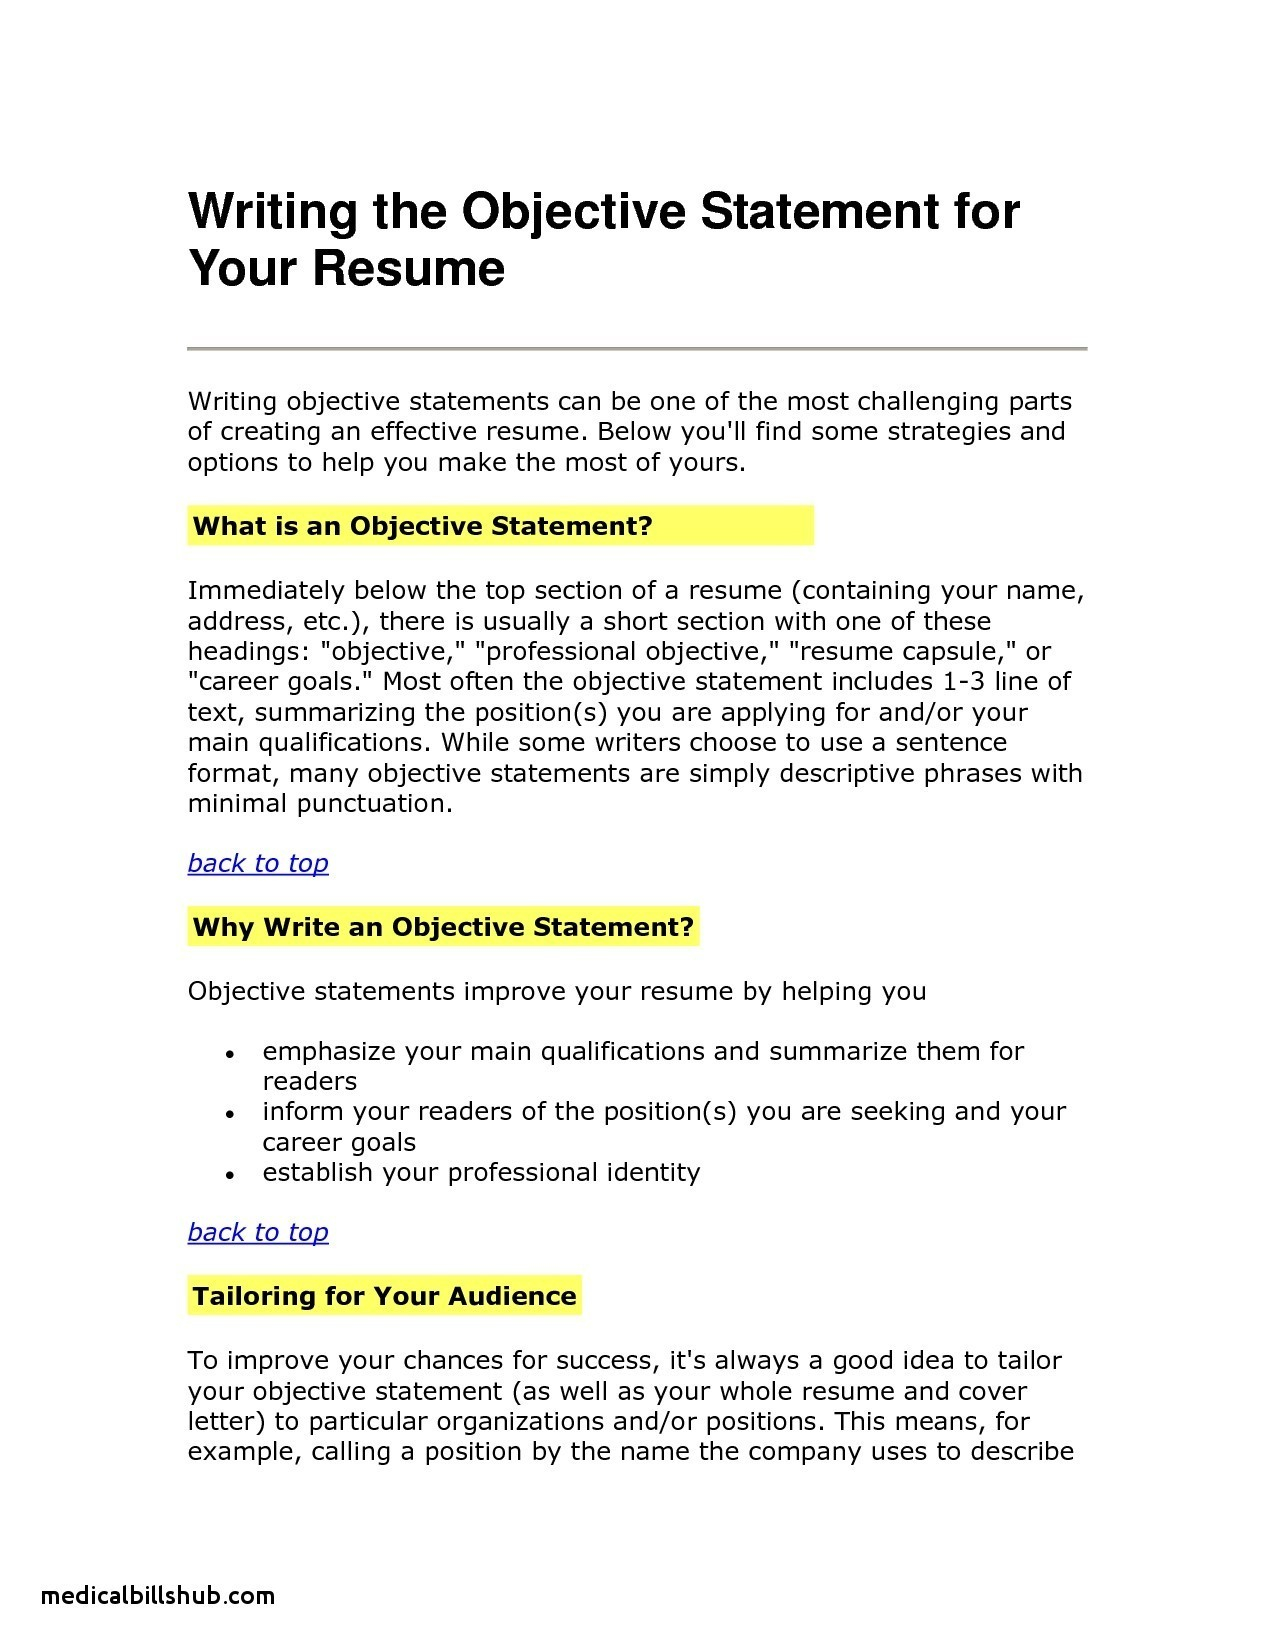 Resume Introduction Examples - Production associate Resume – Resume format Examples 2018